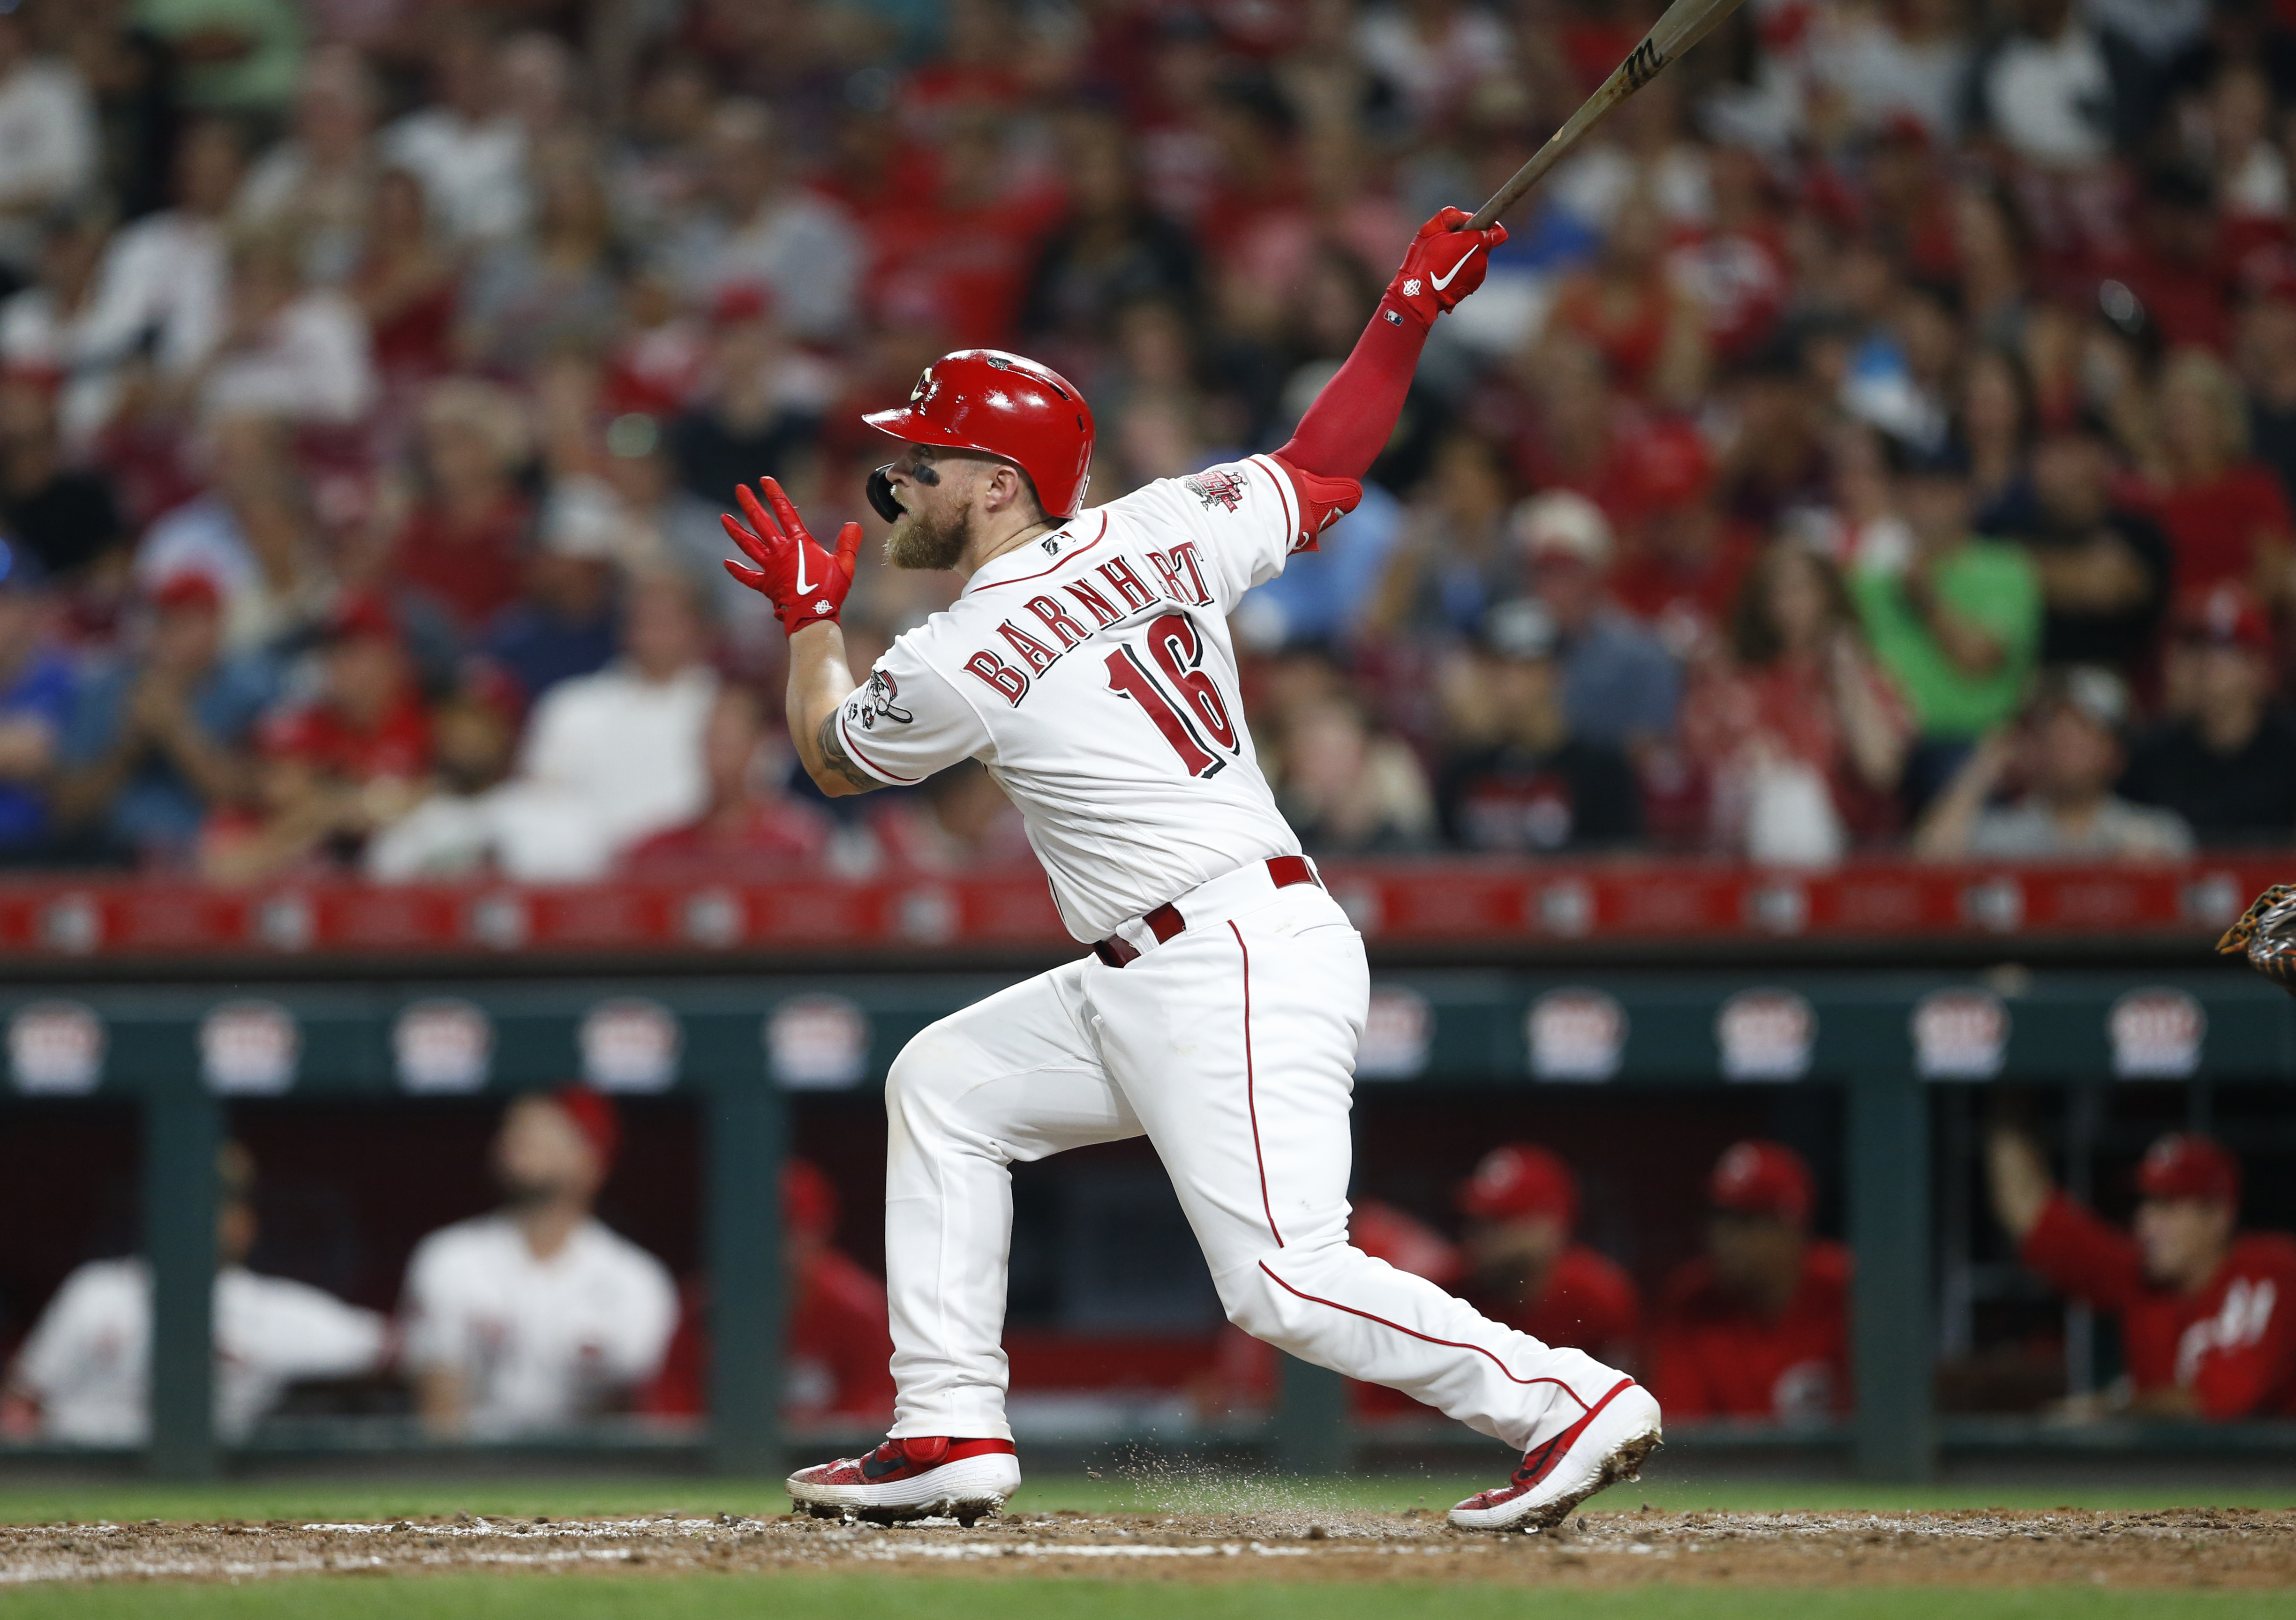 Barnhart leads Reds homer barrage in 8-4 win over Angels